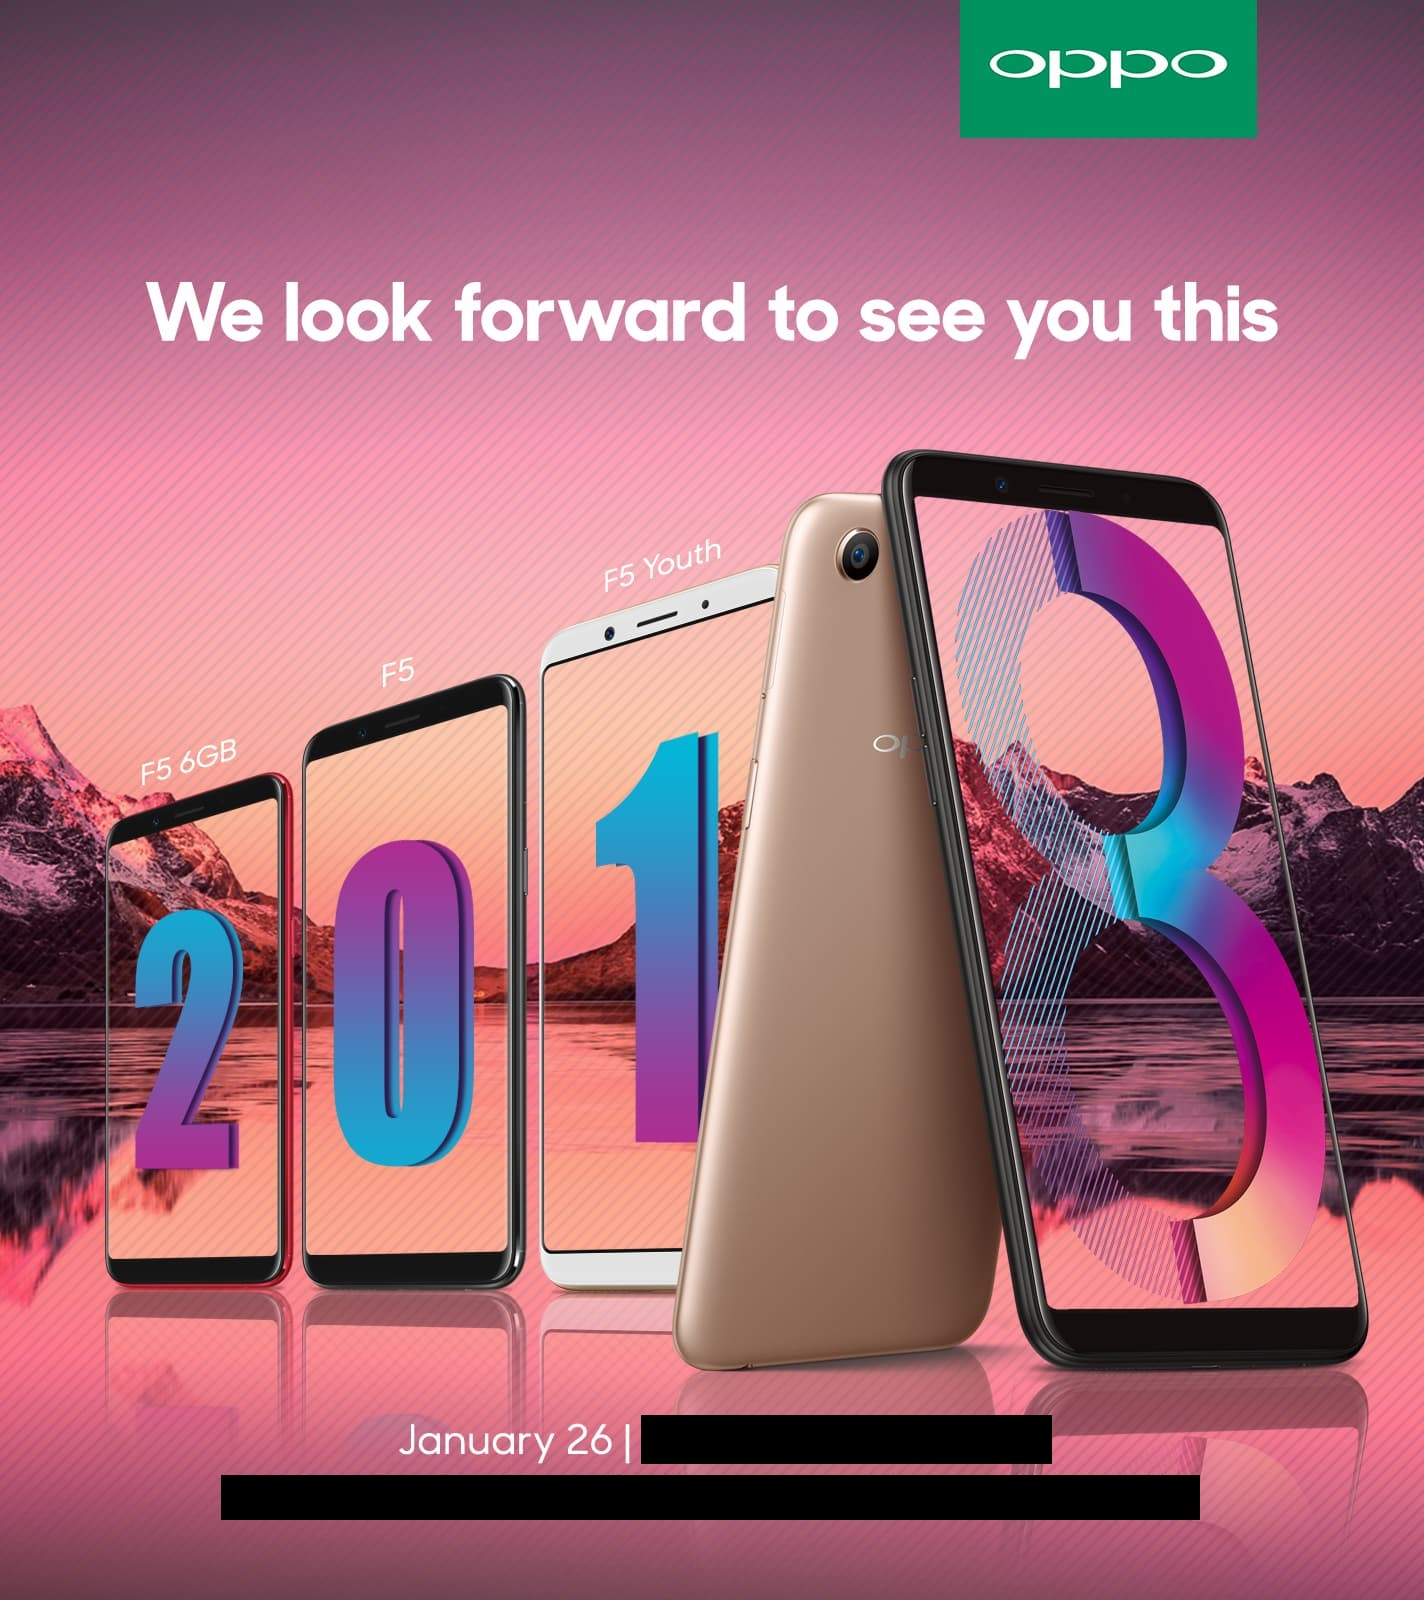 oppo a83 launch2 - OPPO Set to Launch a New Budget Smartphone Soon - Could be the A83?